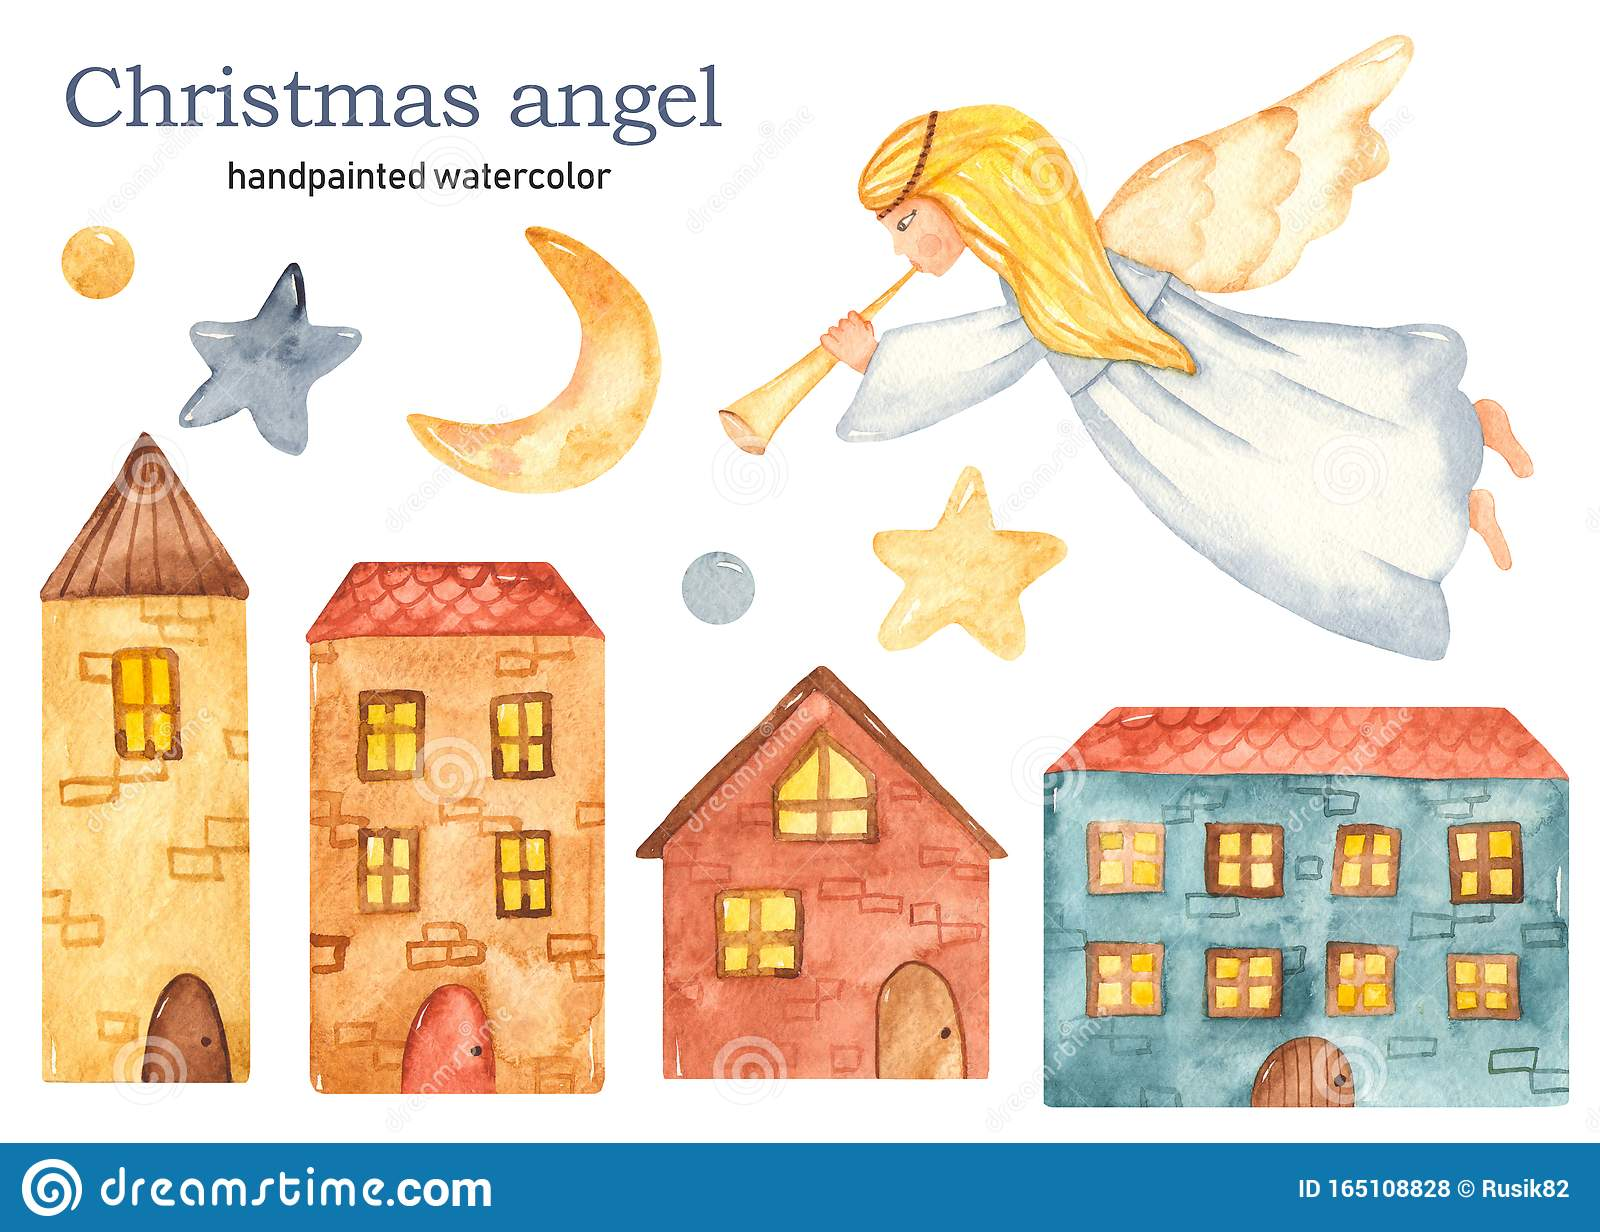 Christmas flying girl angel with trumpet watercolor clipart, houses, crescent, stars